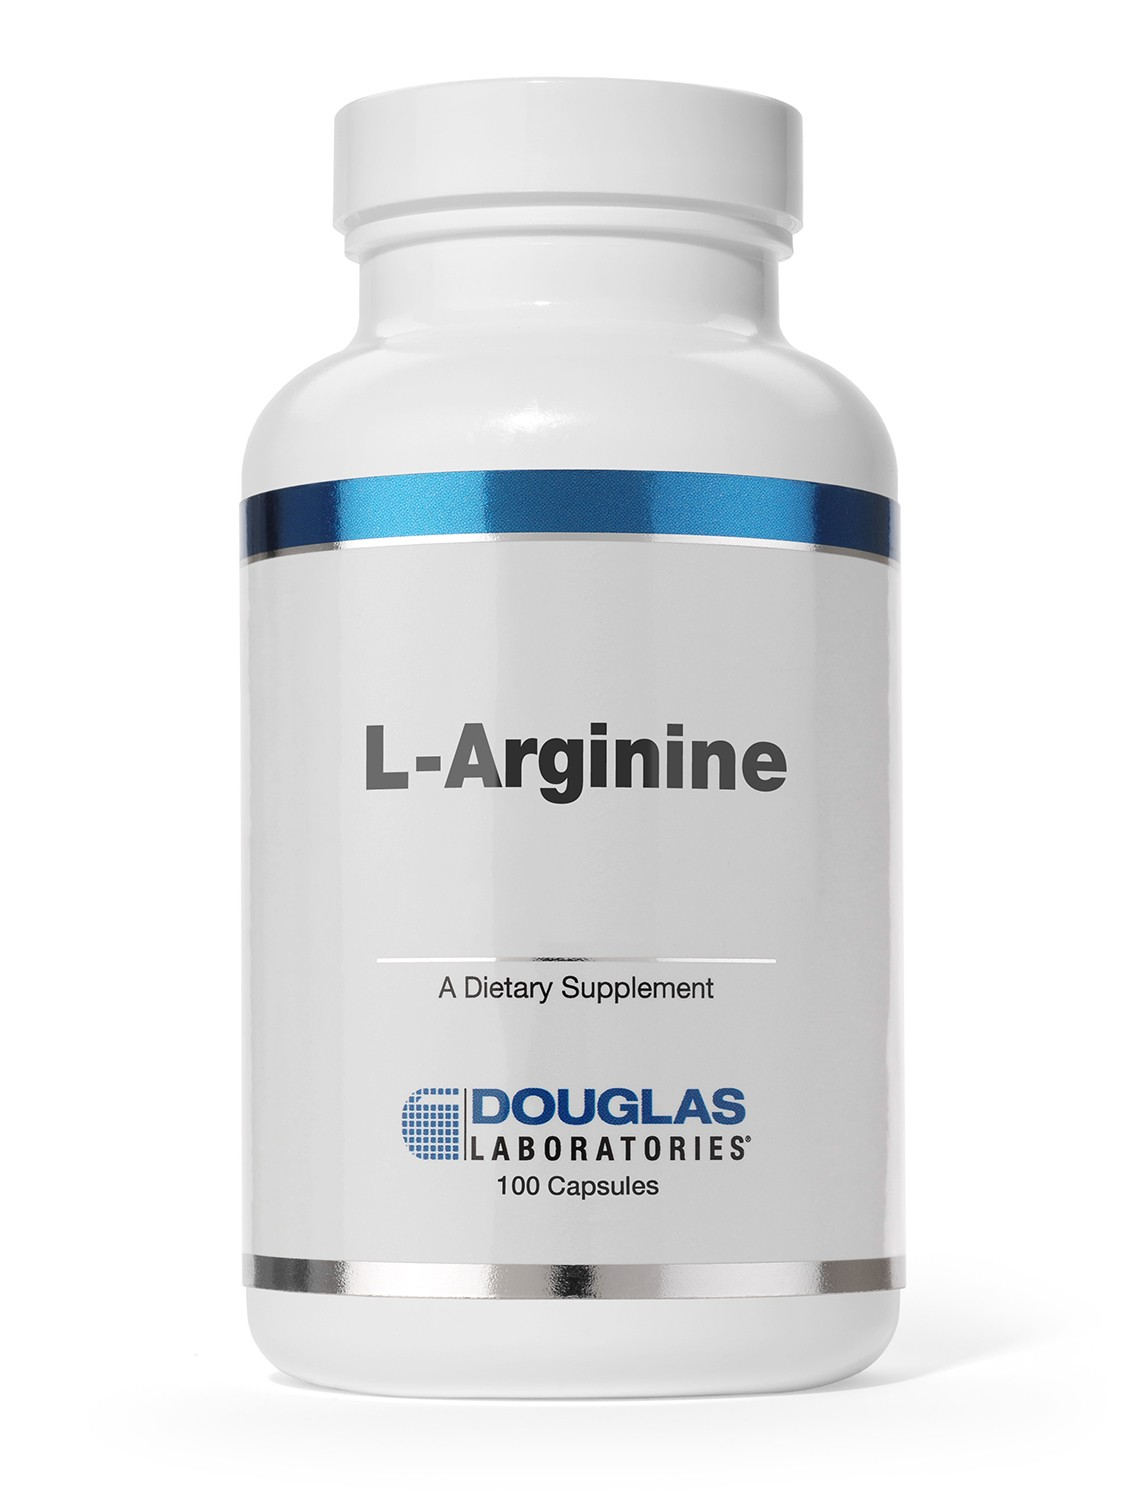 L-Arginine Health Benefits Improves Immune Function